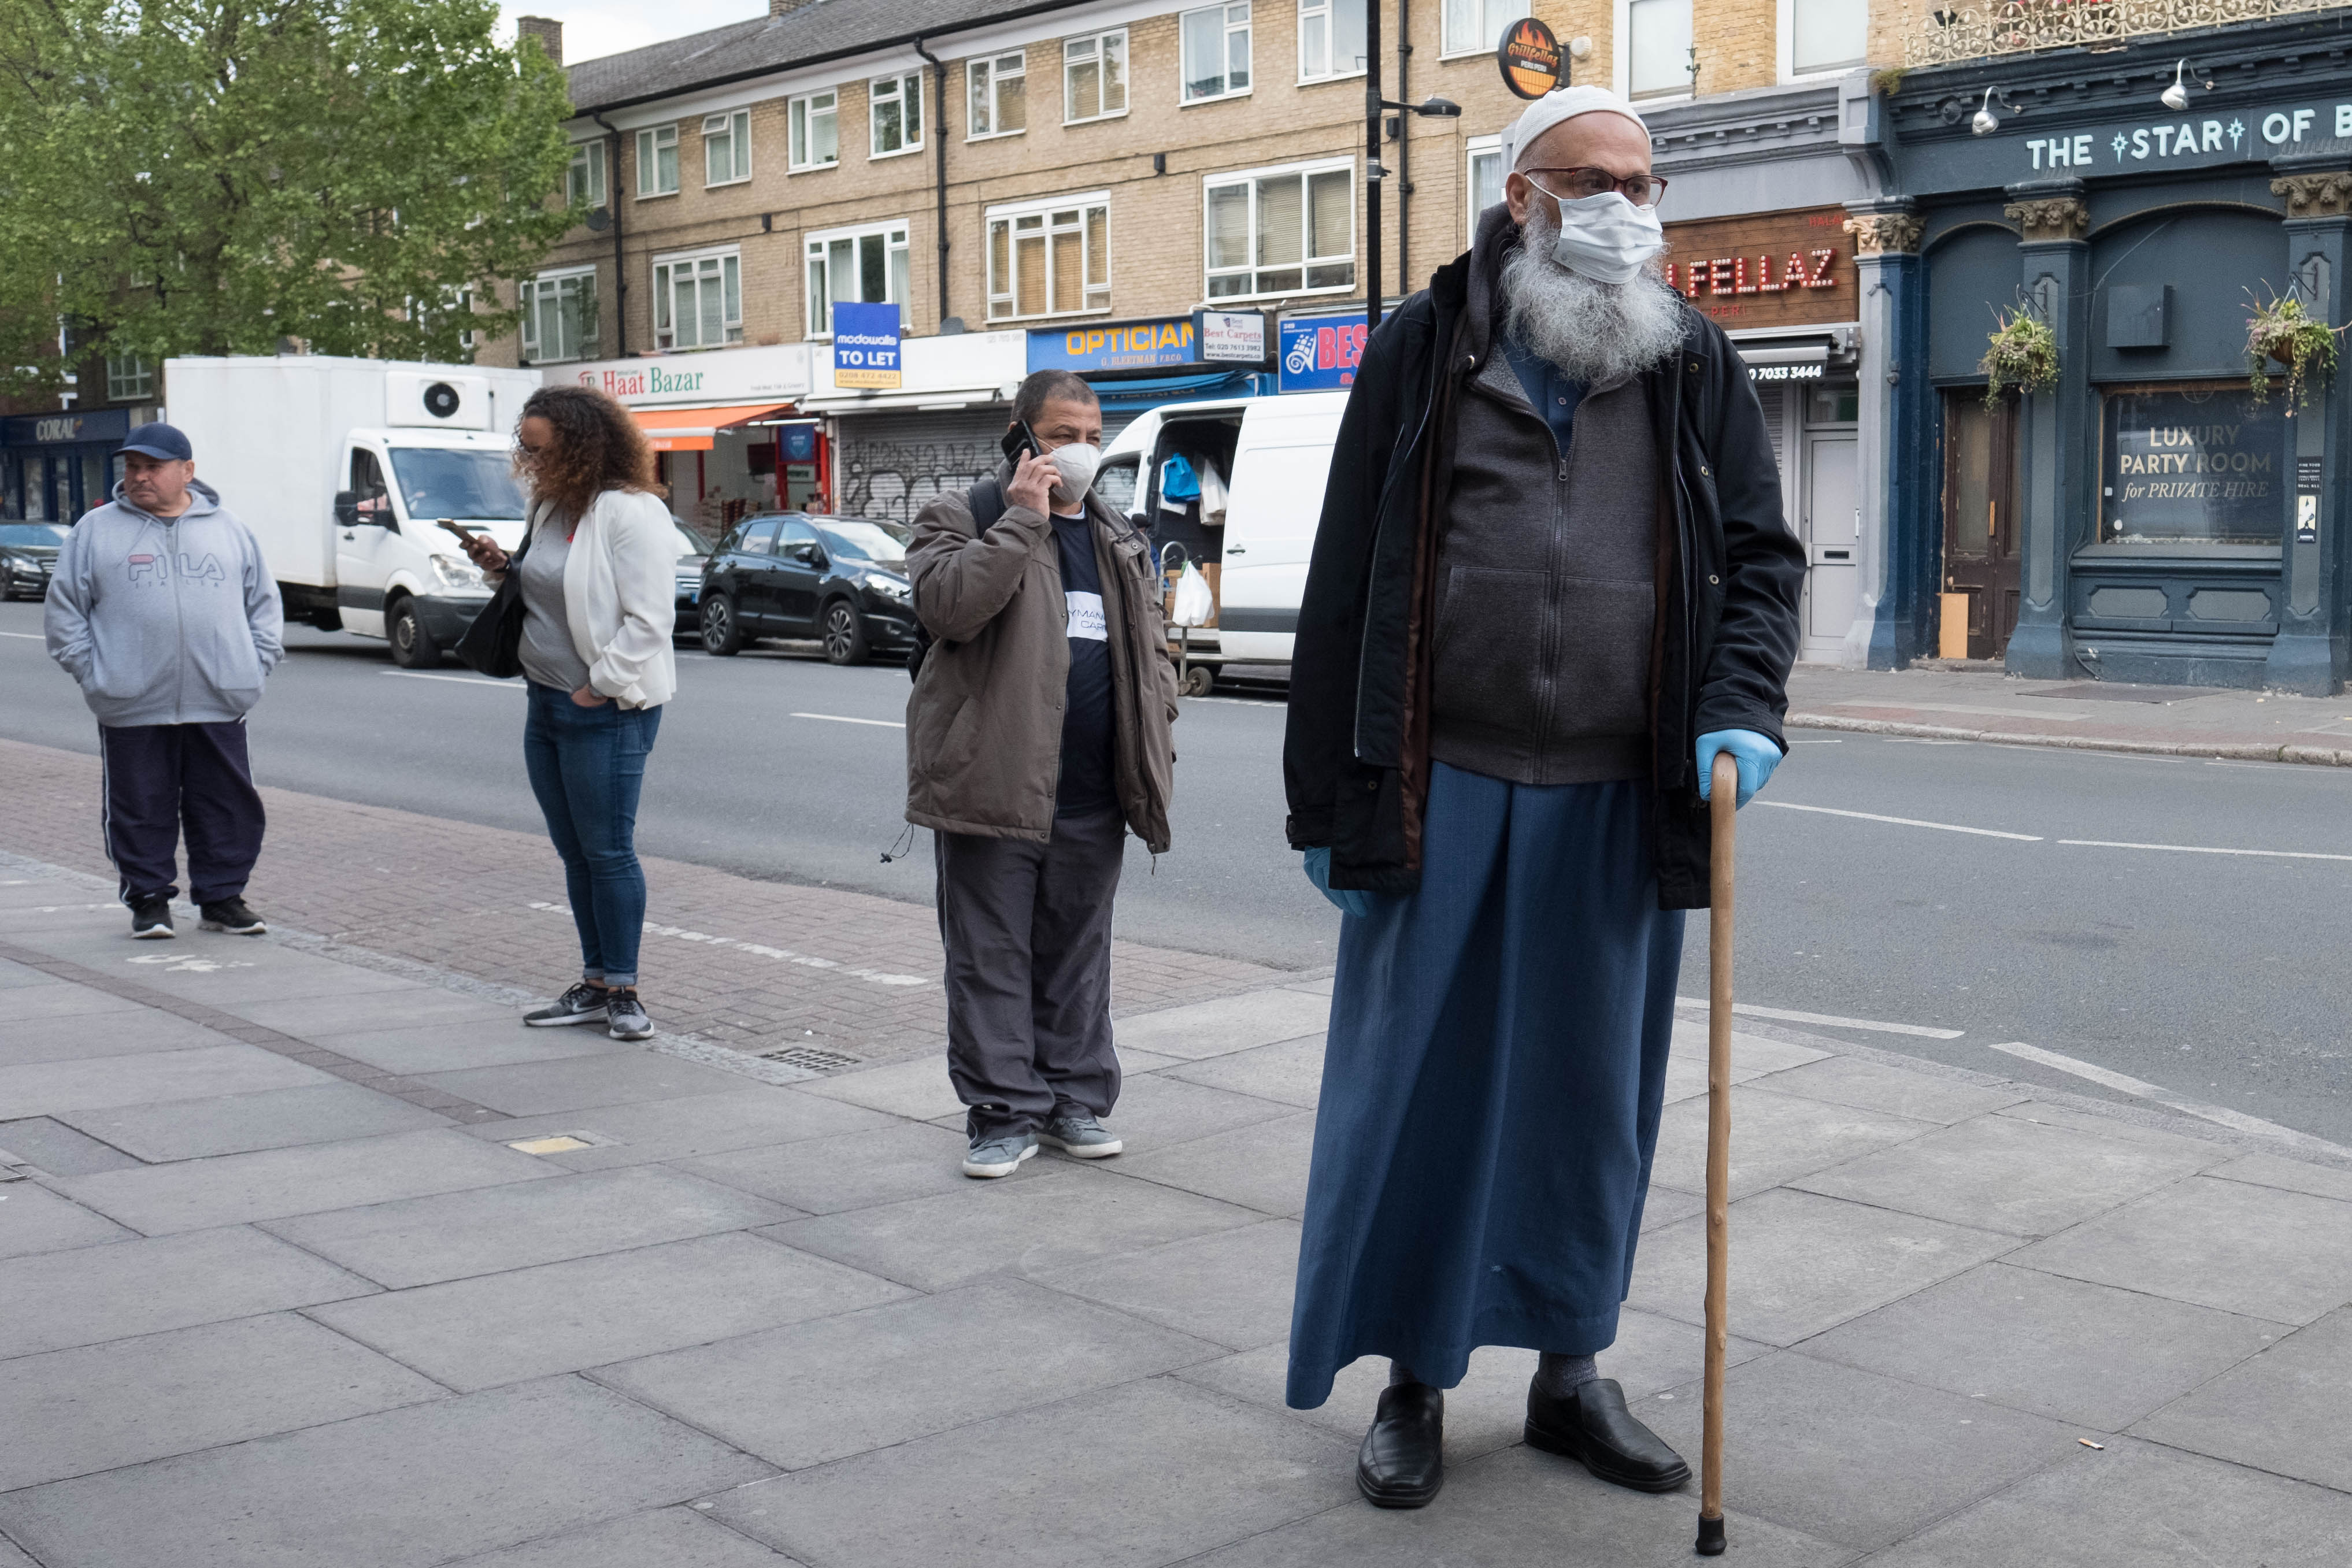 Members of the Islamic community in Bethnal Green, east London go about their daily business during the holy month of Ramadan as the UK continues in lockdown to help curb the spread of the coronavirus.